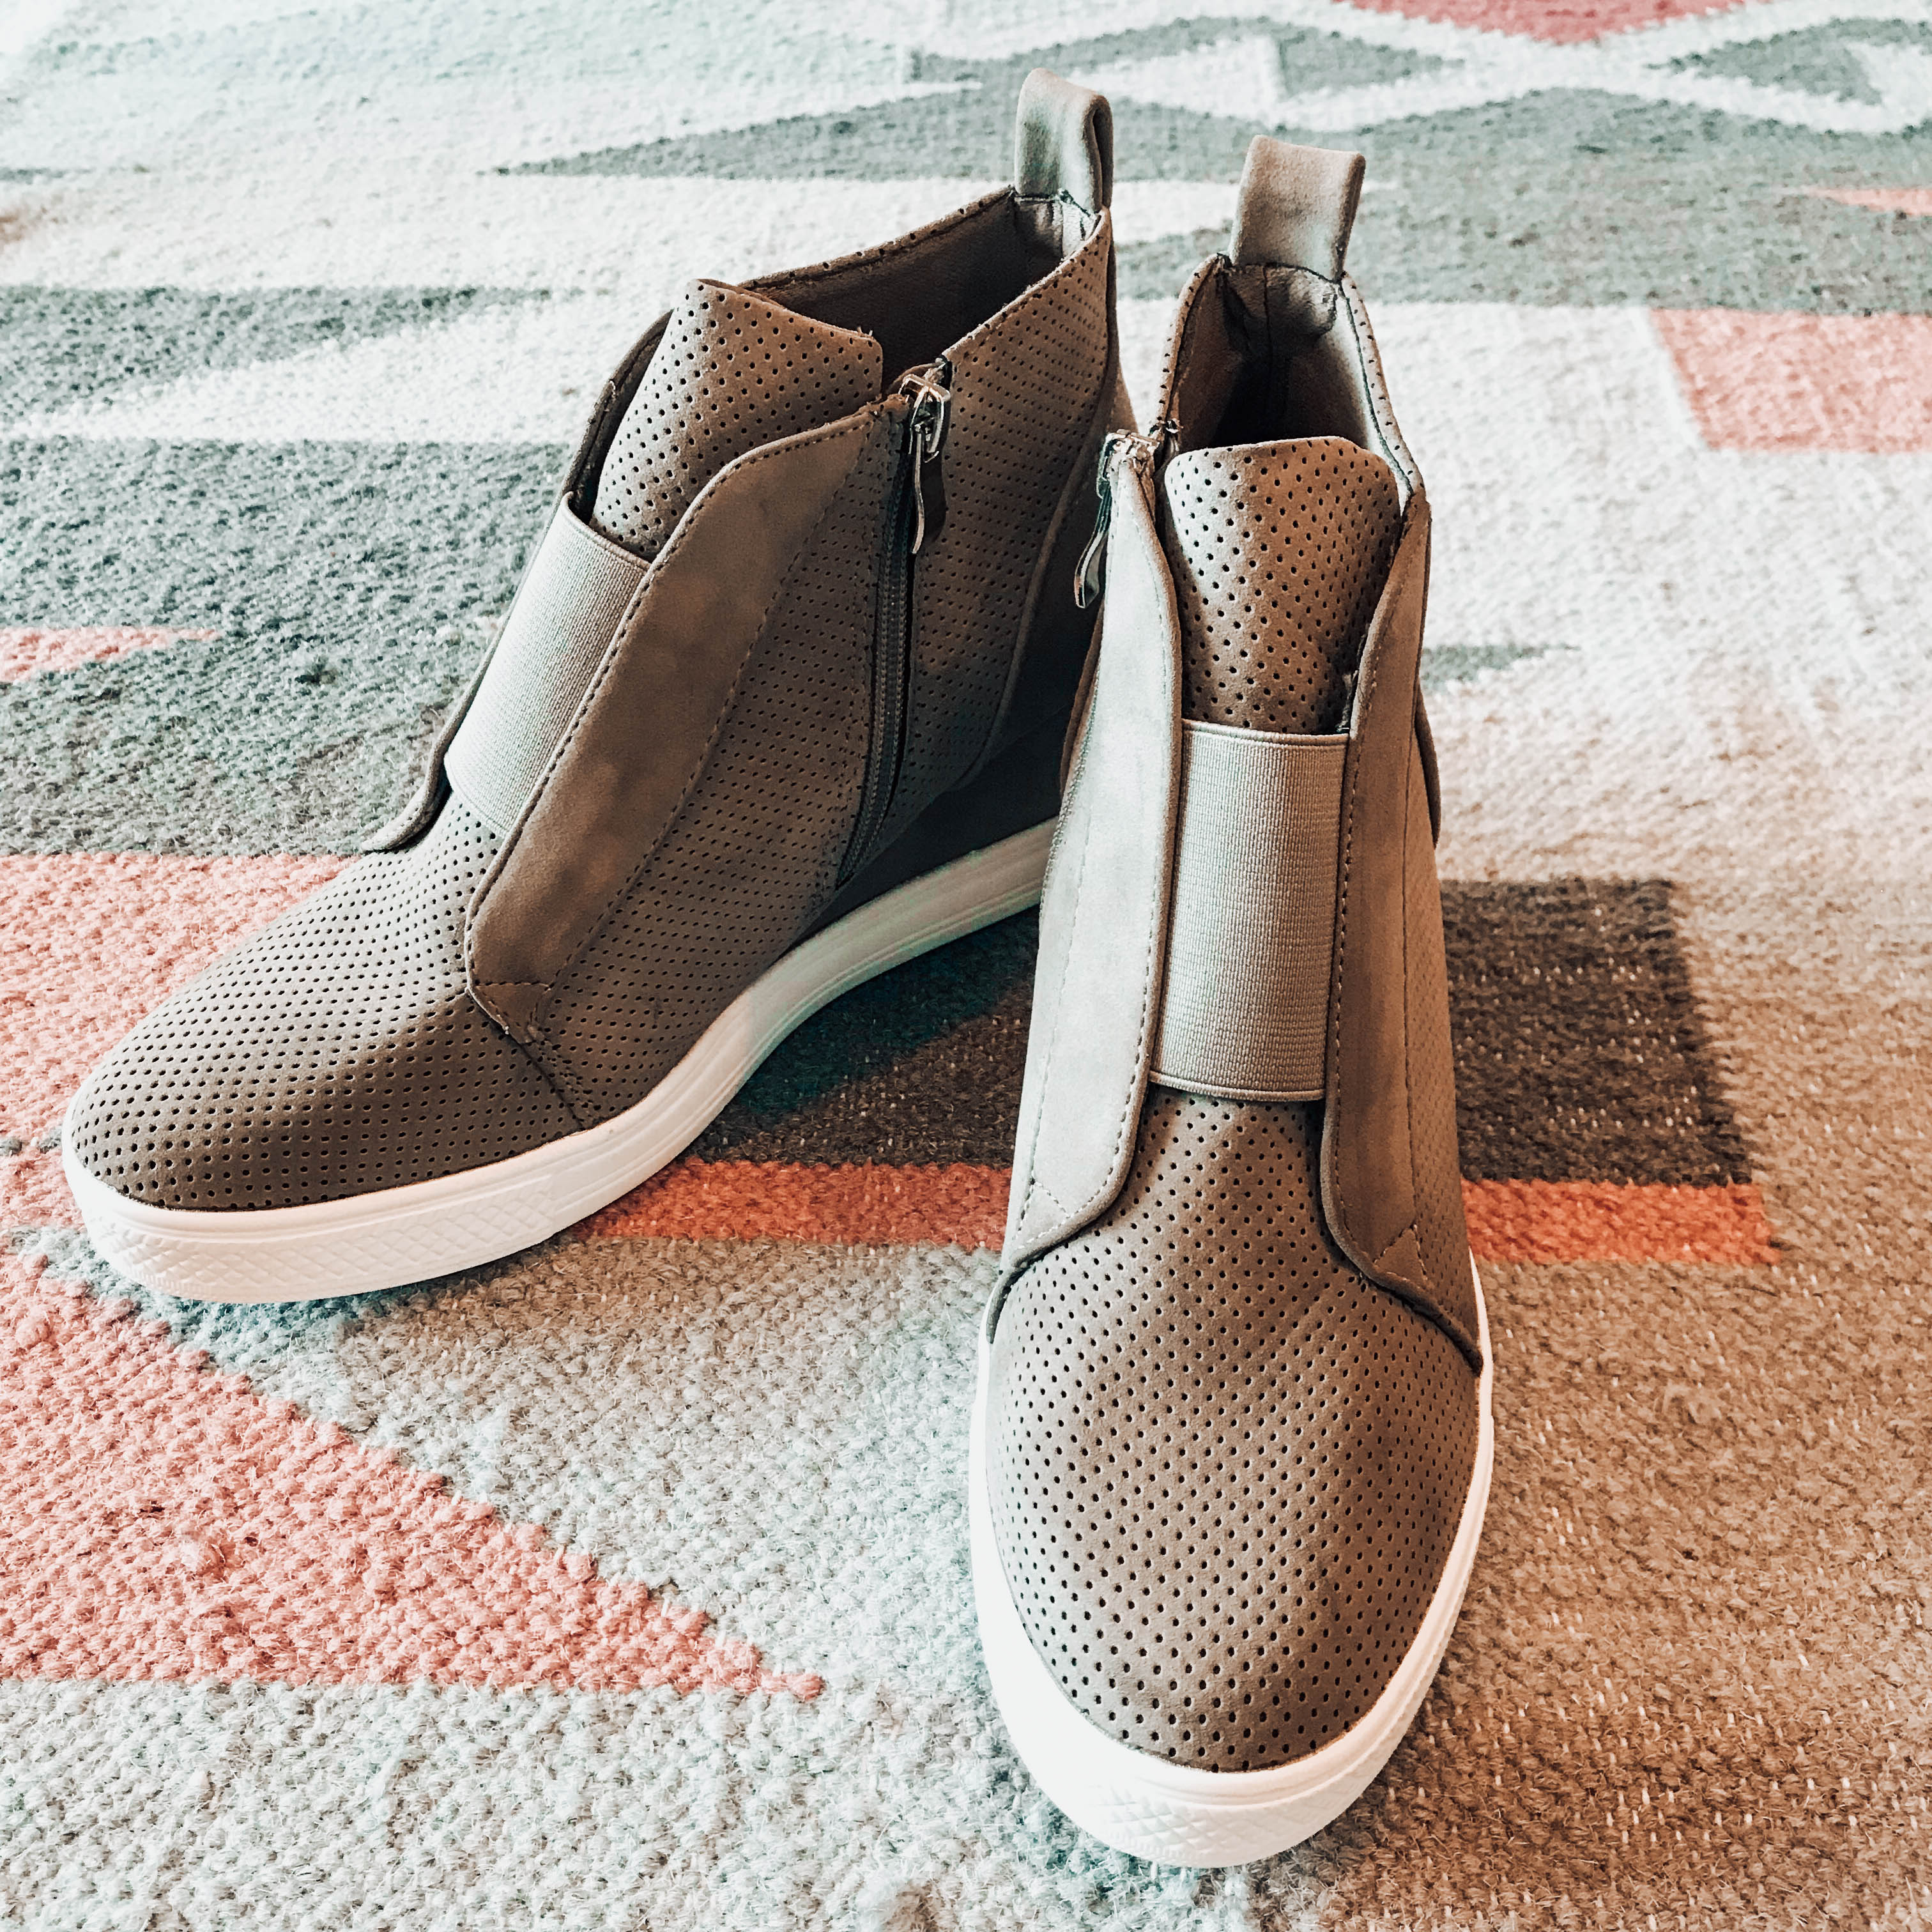 Zoey Taupe Wedge Sneakers - Makaila James